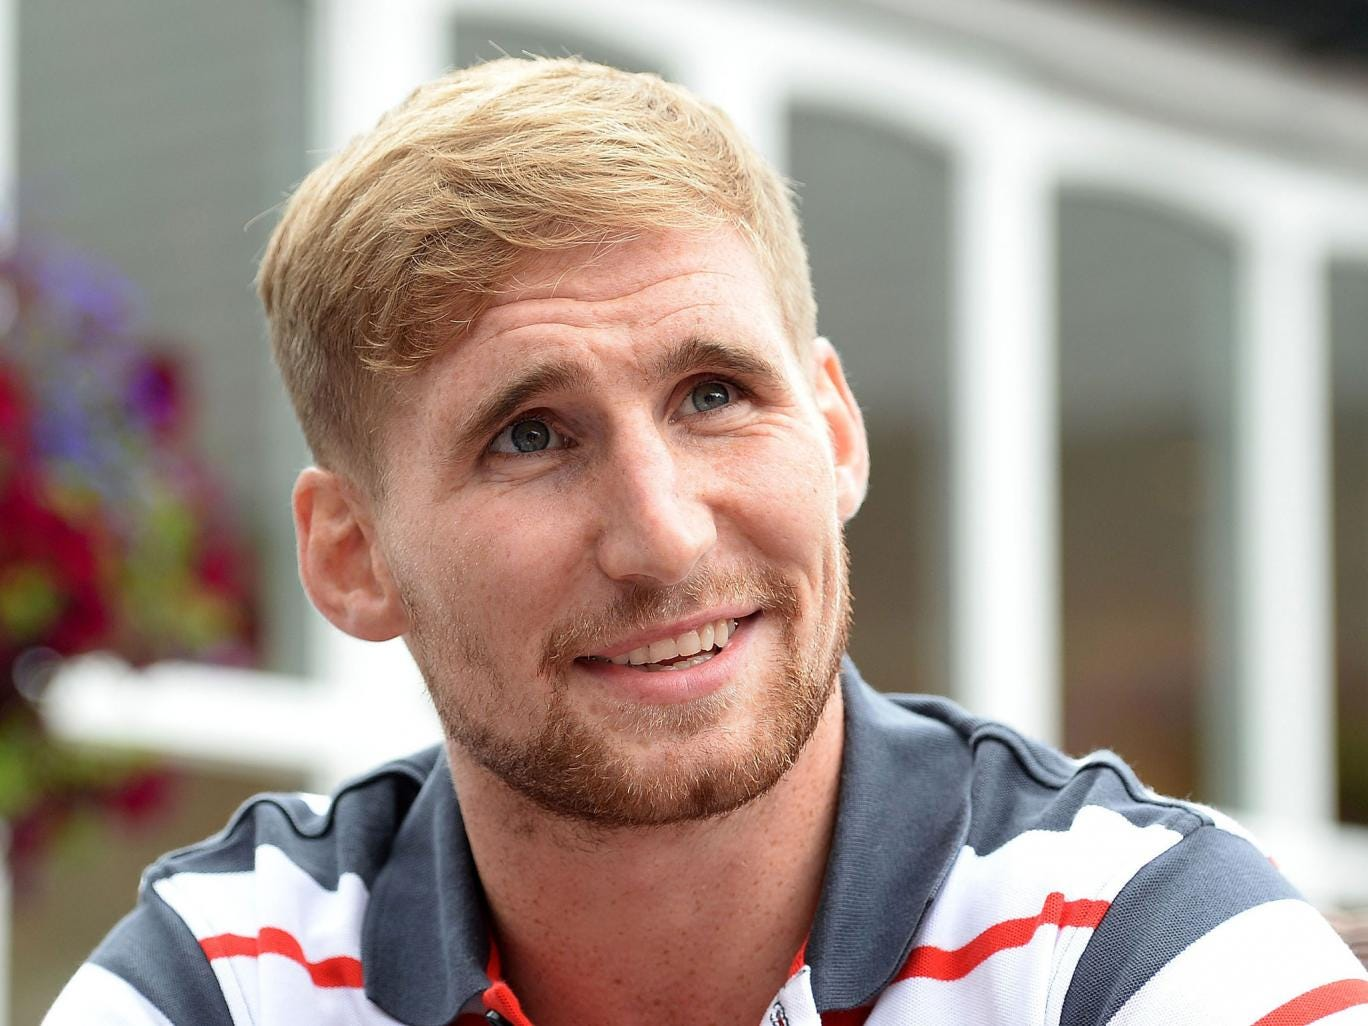 Wigan's Sam Tomkins is the short-priced favourite to win the Lance Todd Trophy as man of the match